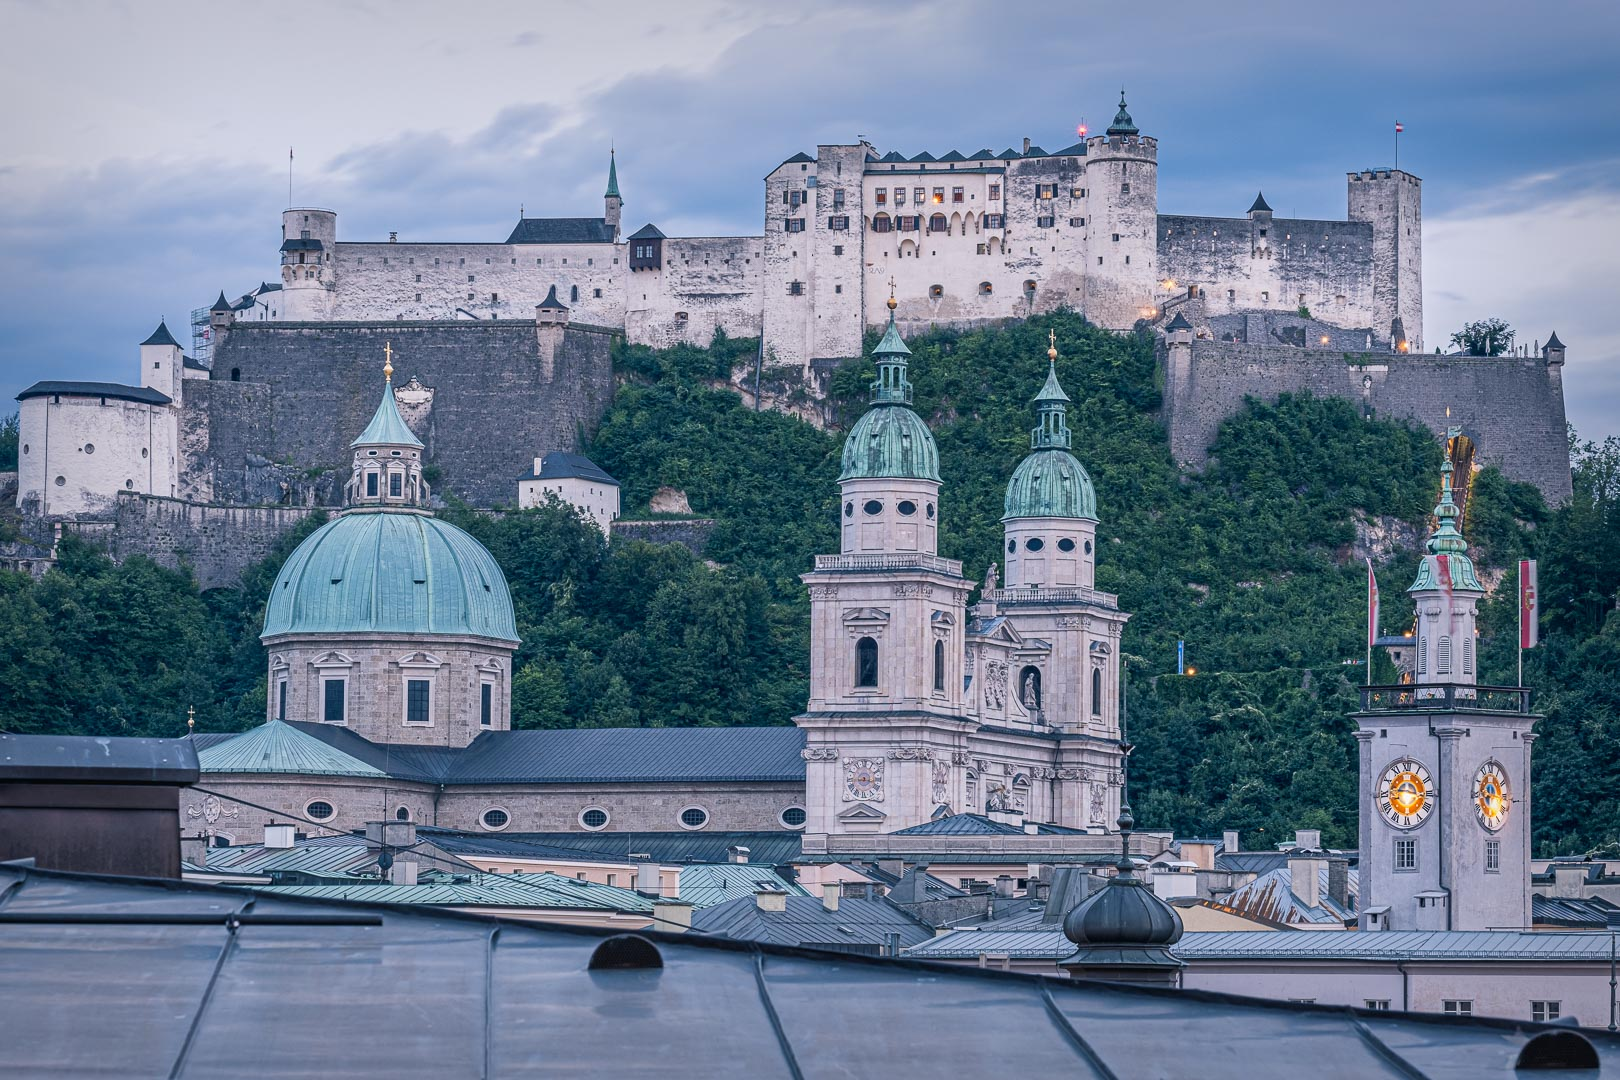 The Fortress of Salzburg above the Salzburg Old Town